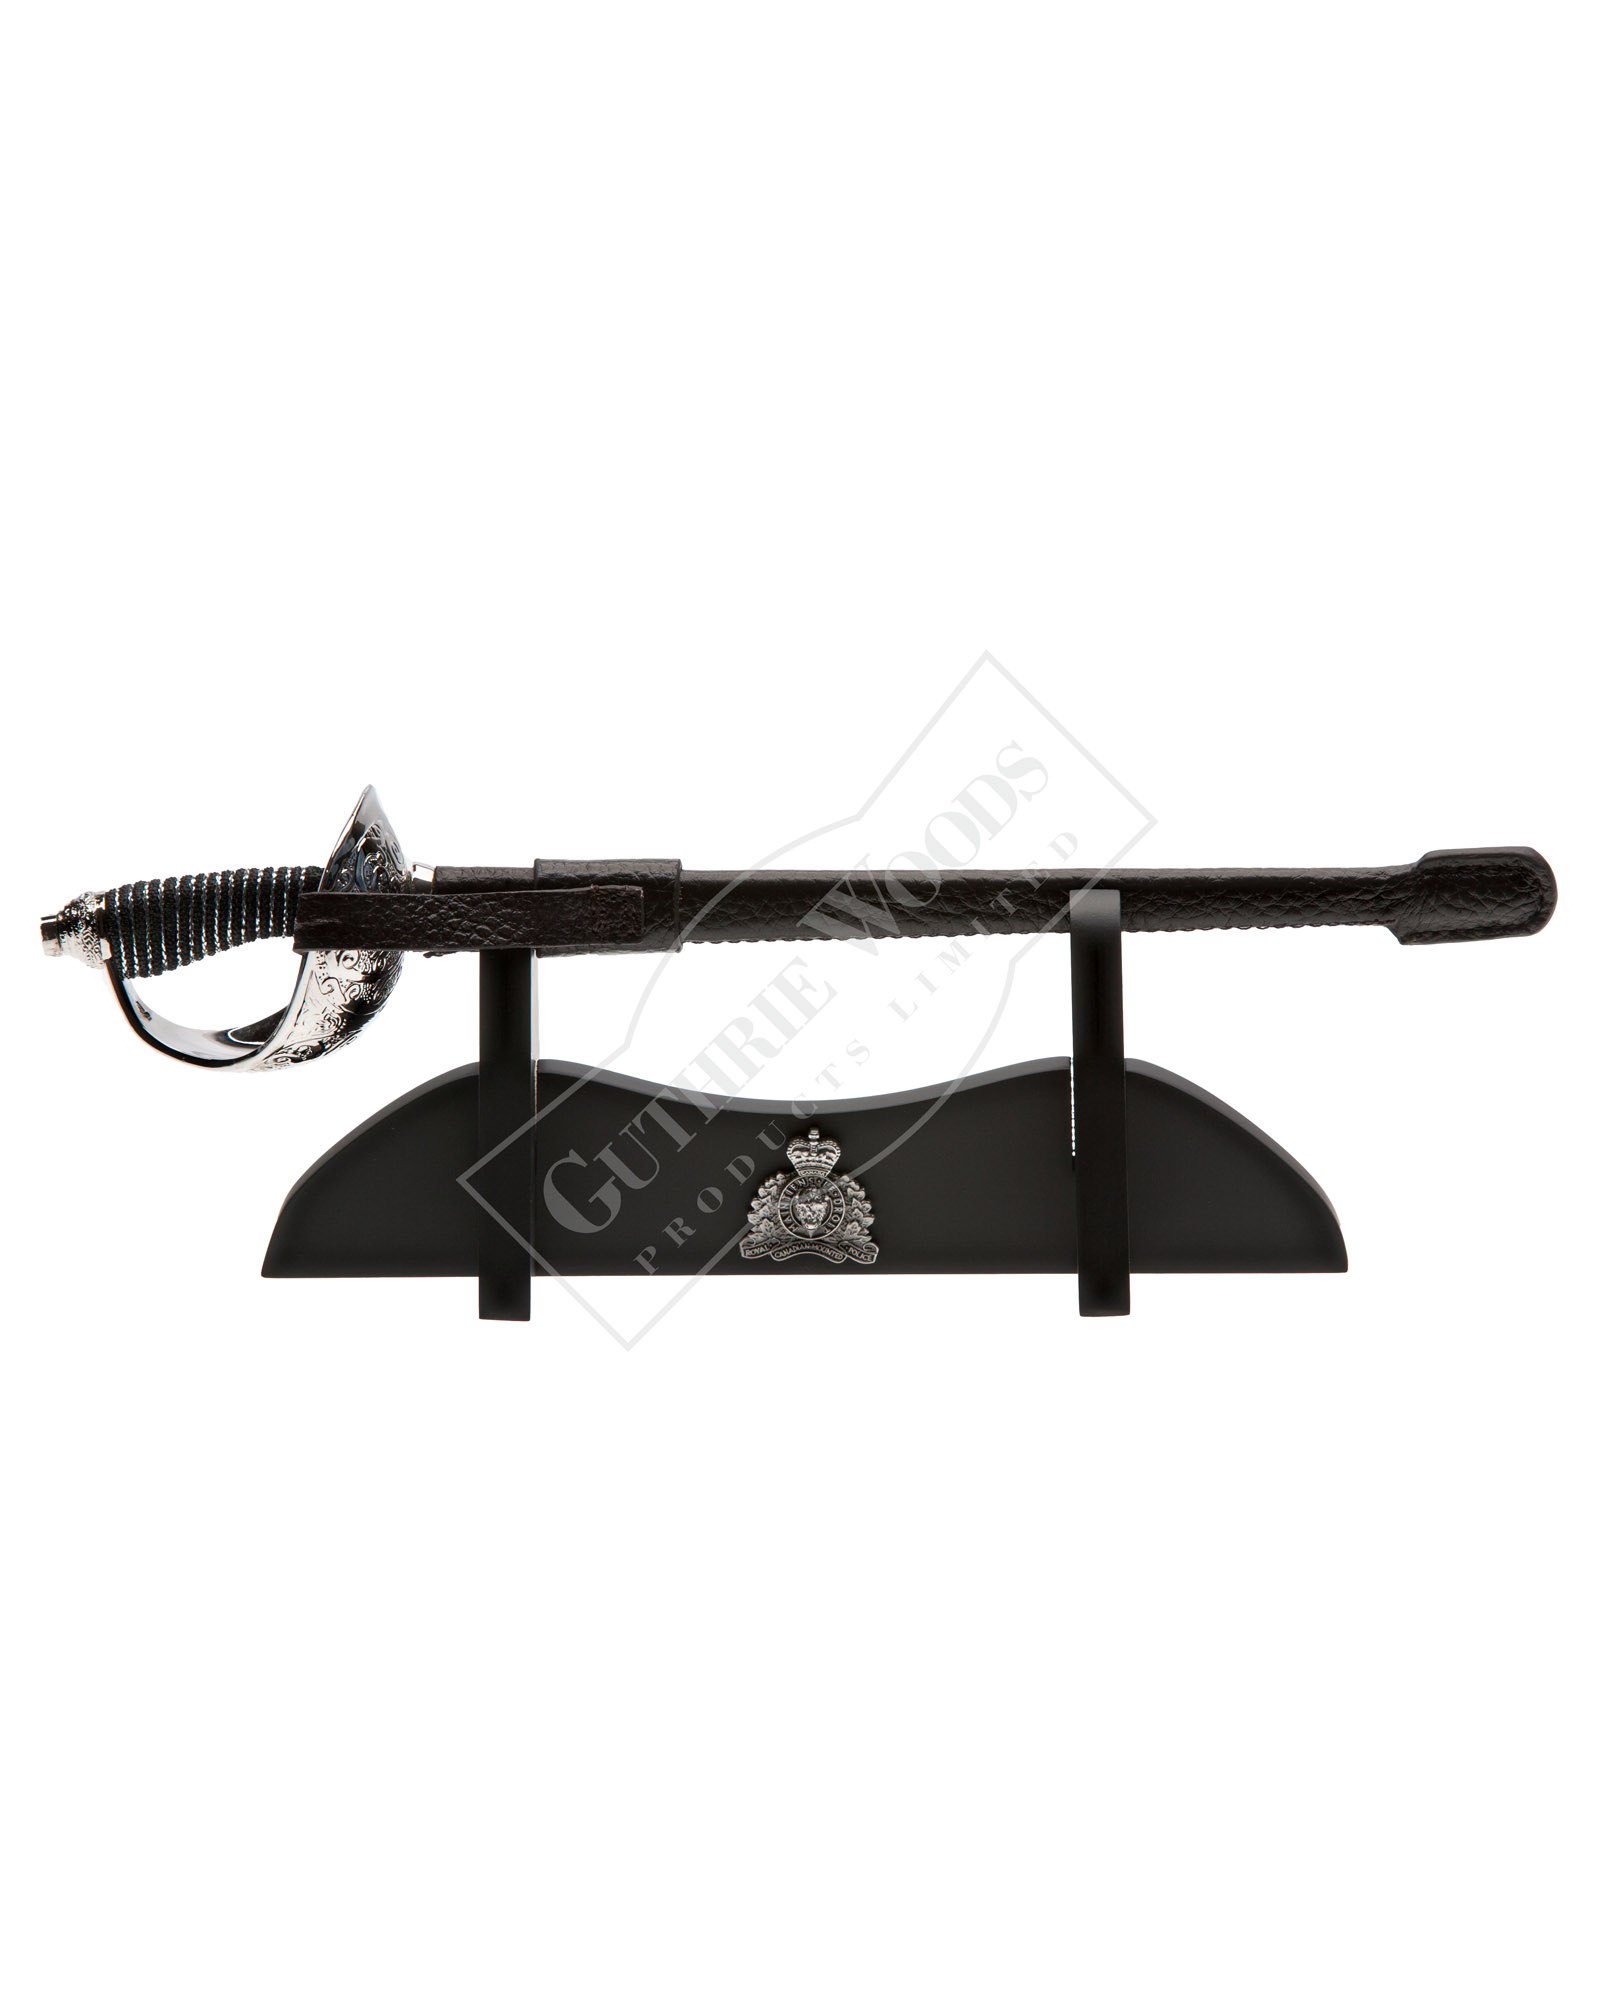 RCMP Replica Miniature Sword - 274-MPCL